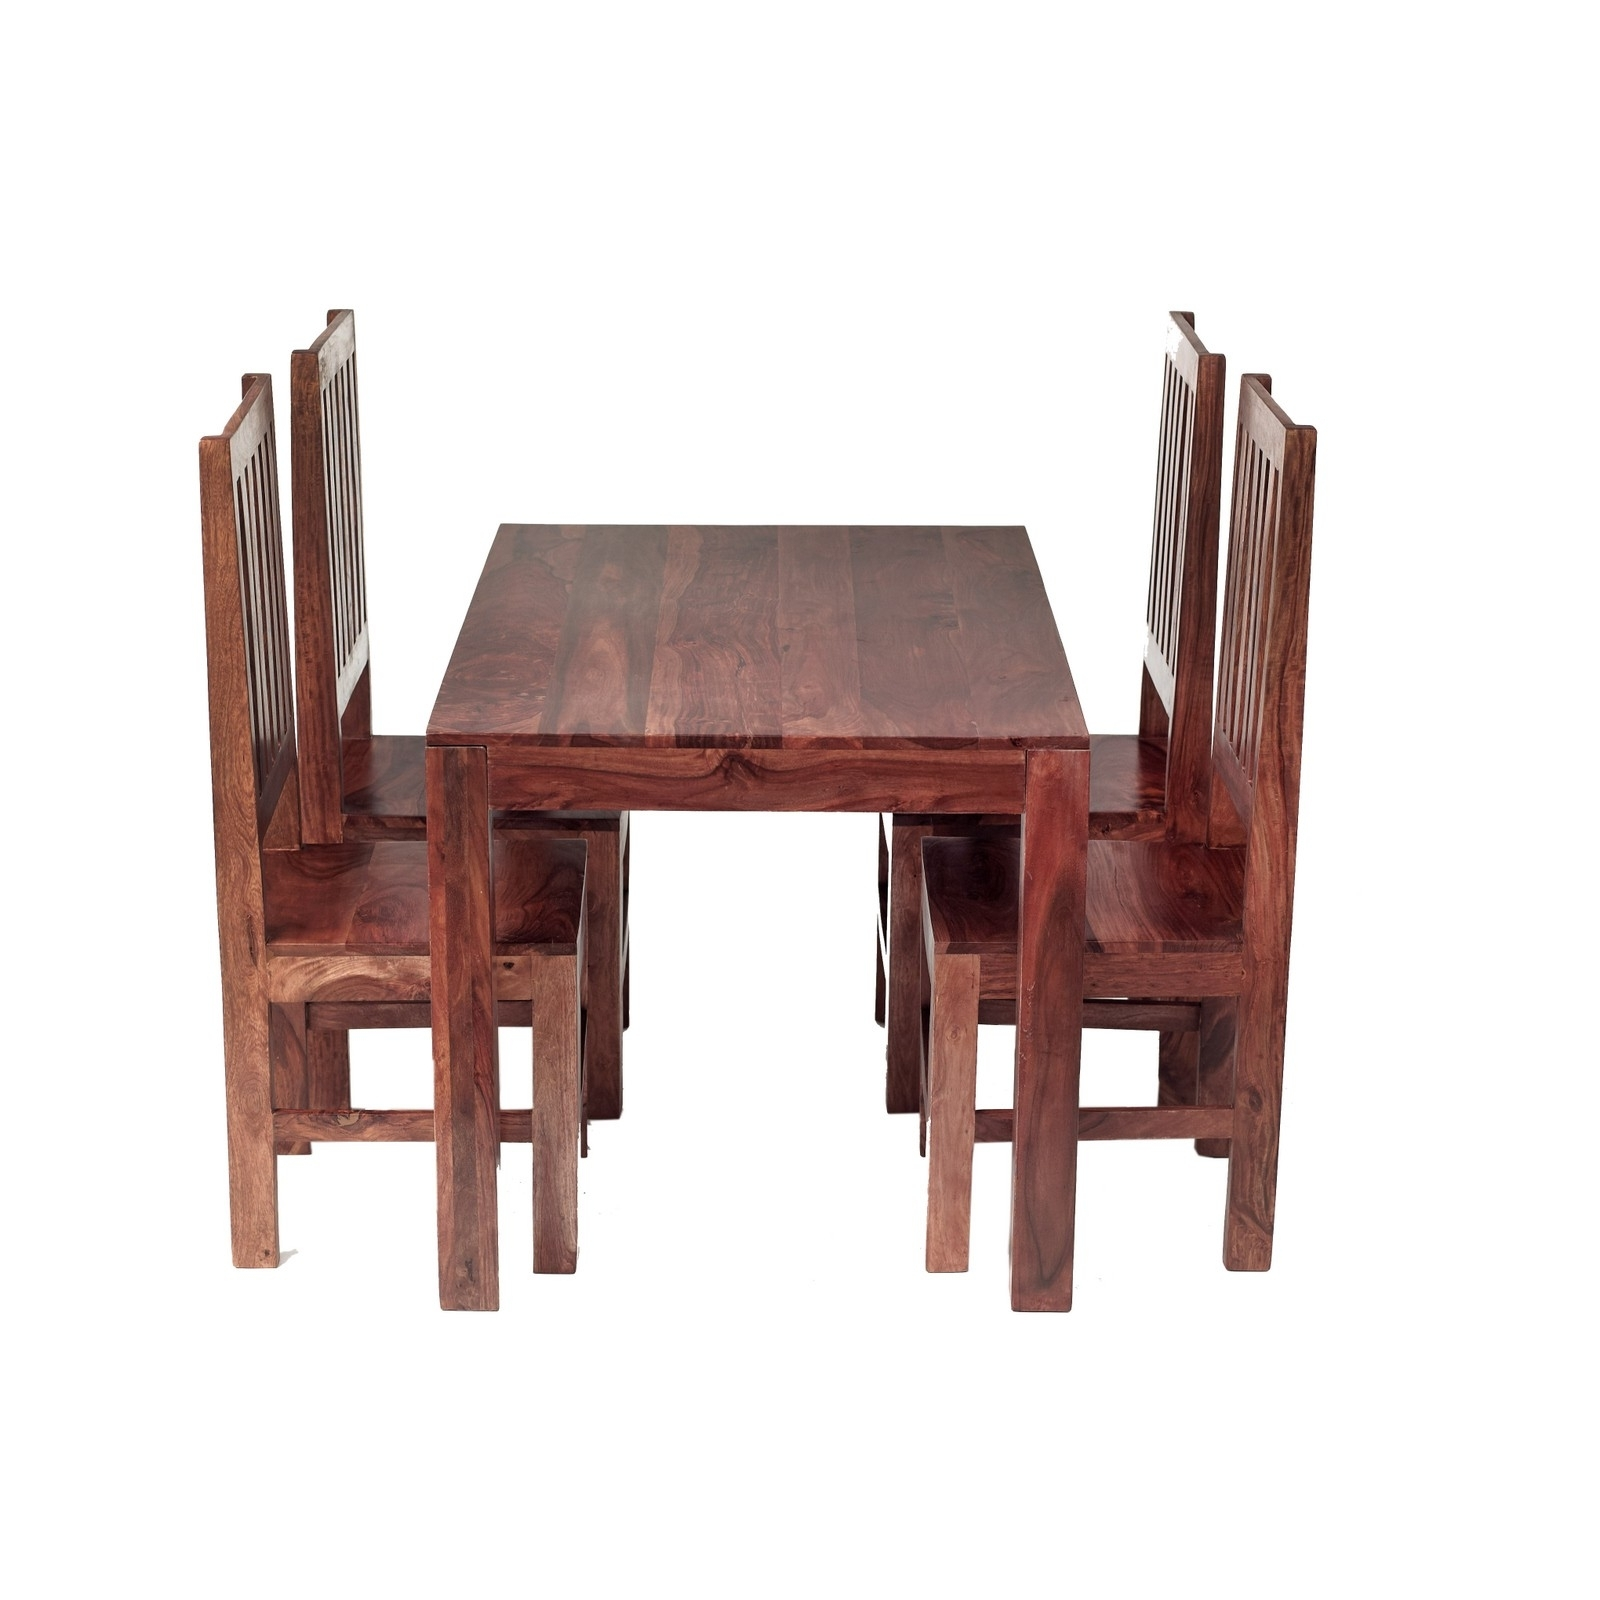 Fashionable Cube Sheesham 4 Ft Dining Set With Wooden Chairs – Verty Indian With Regard To Indian Dining Chairs (View 7 of 25)